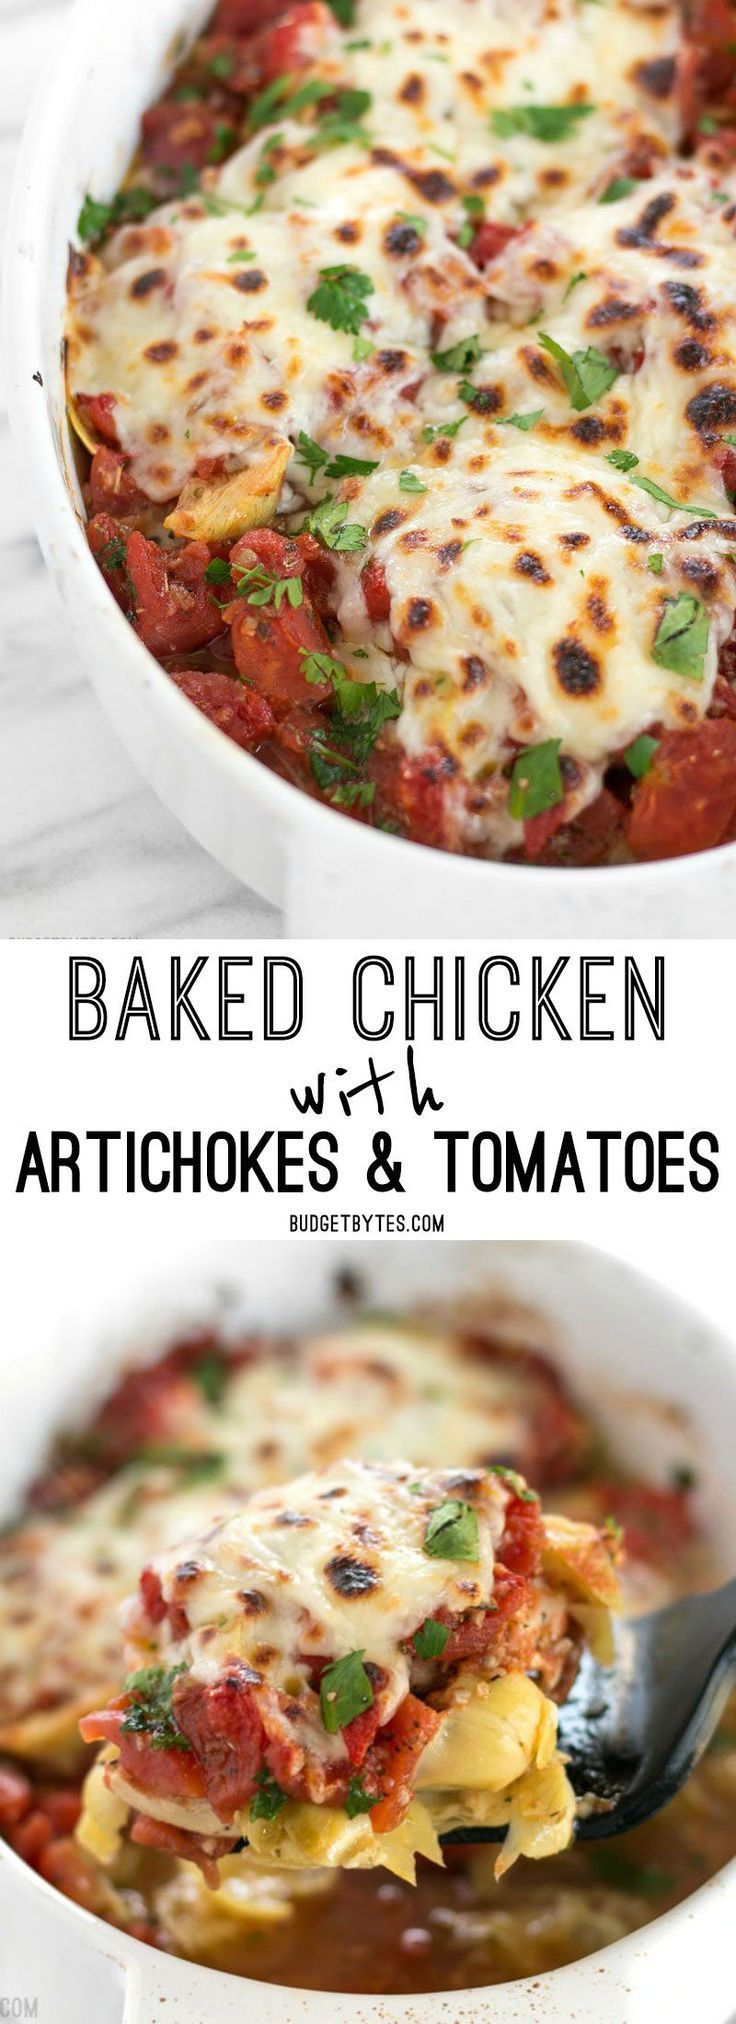 Baked Chicken with Artichokes and Tomatoes is an easy last minute dinner you can make with pantry staples.